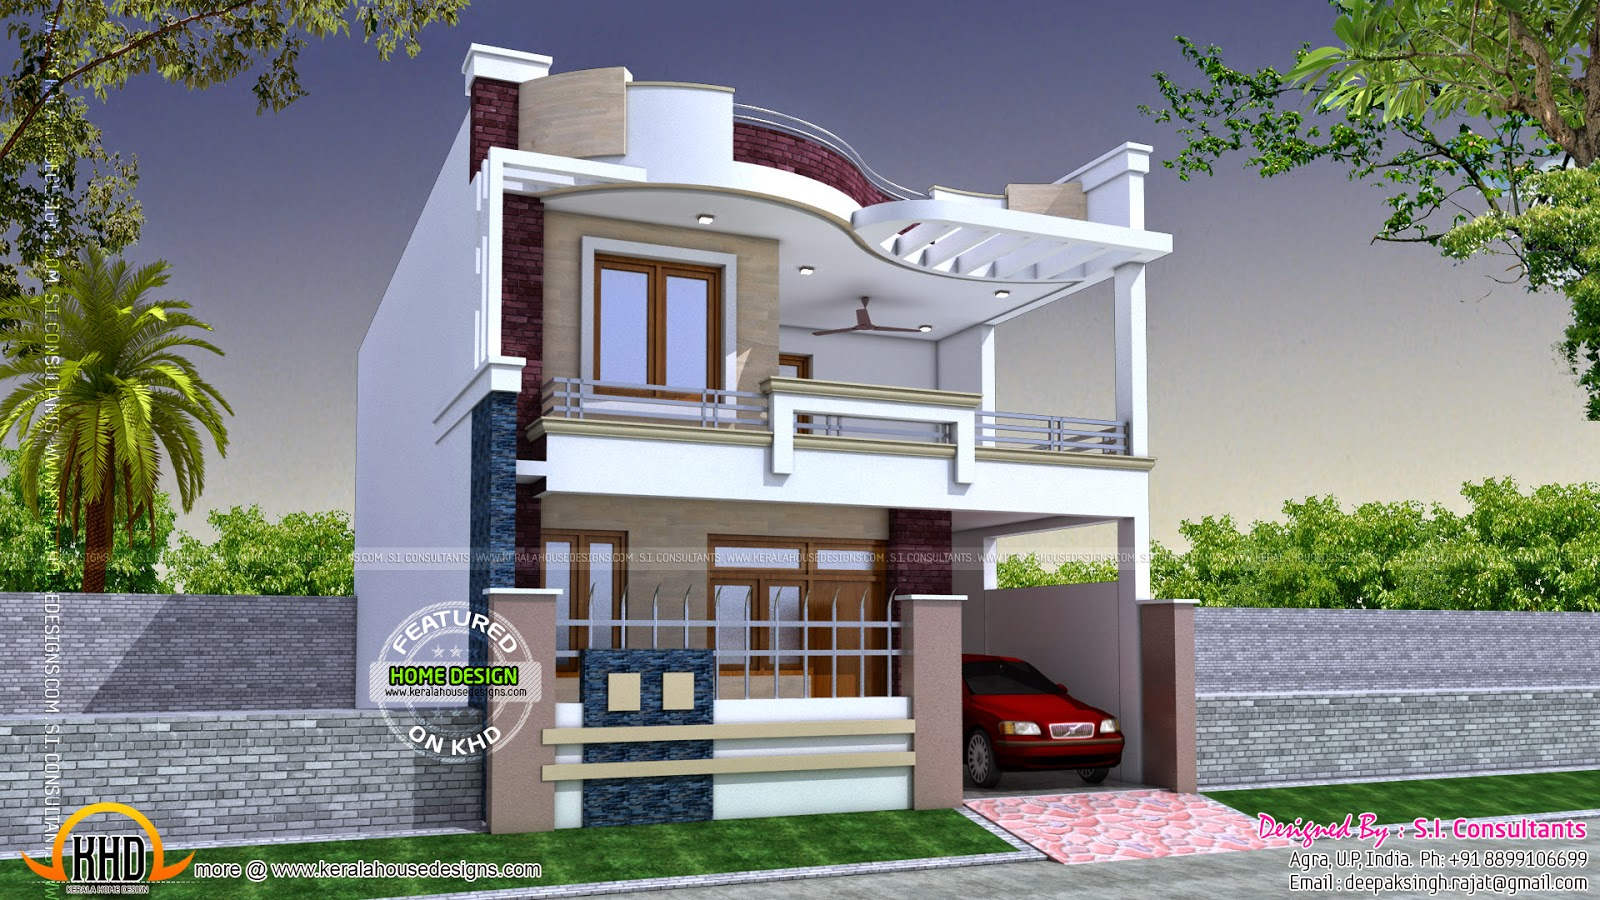 Modern indian home design kerala home design and floor plans for House floor plans indian style